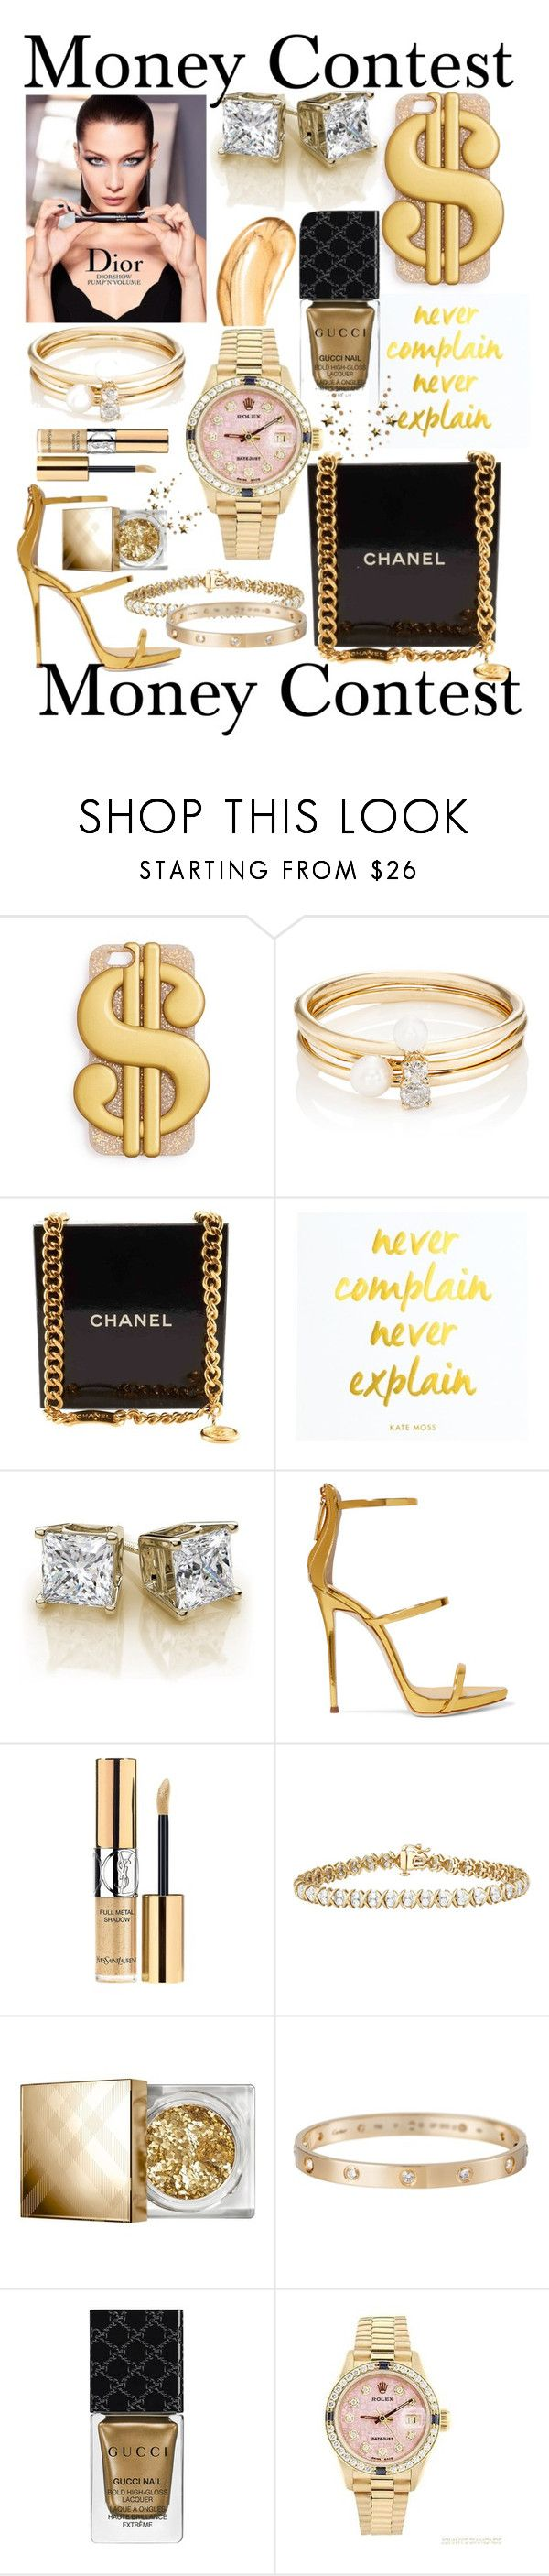 """""""Money Contest"""" by mandimwpink ❤ liked on Polyvore featuring ban.do, Loren Stewart, Chanel, Giuseppe Zanotti, Yves Saint Laurent, Burberry, Cartier, Gucci, Rolex and Tom Ford"""